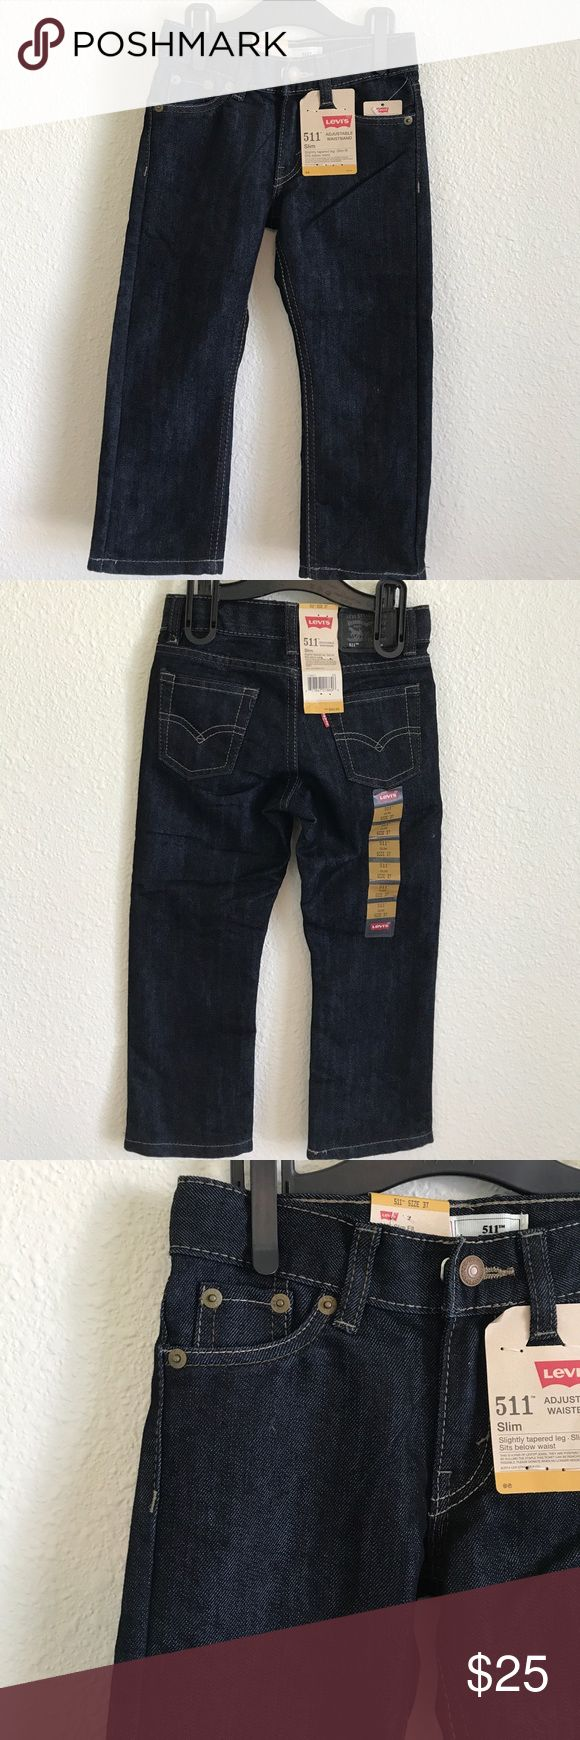 LEVI'S 511 SLIM FIT JEANS NWT Levi's 511 Slim Fit Jeans with Adjustable Waistband - Slightly tapered leg. Size 3T Levi's Bottoms Jeans